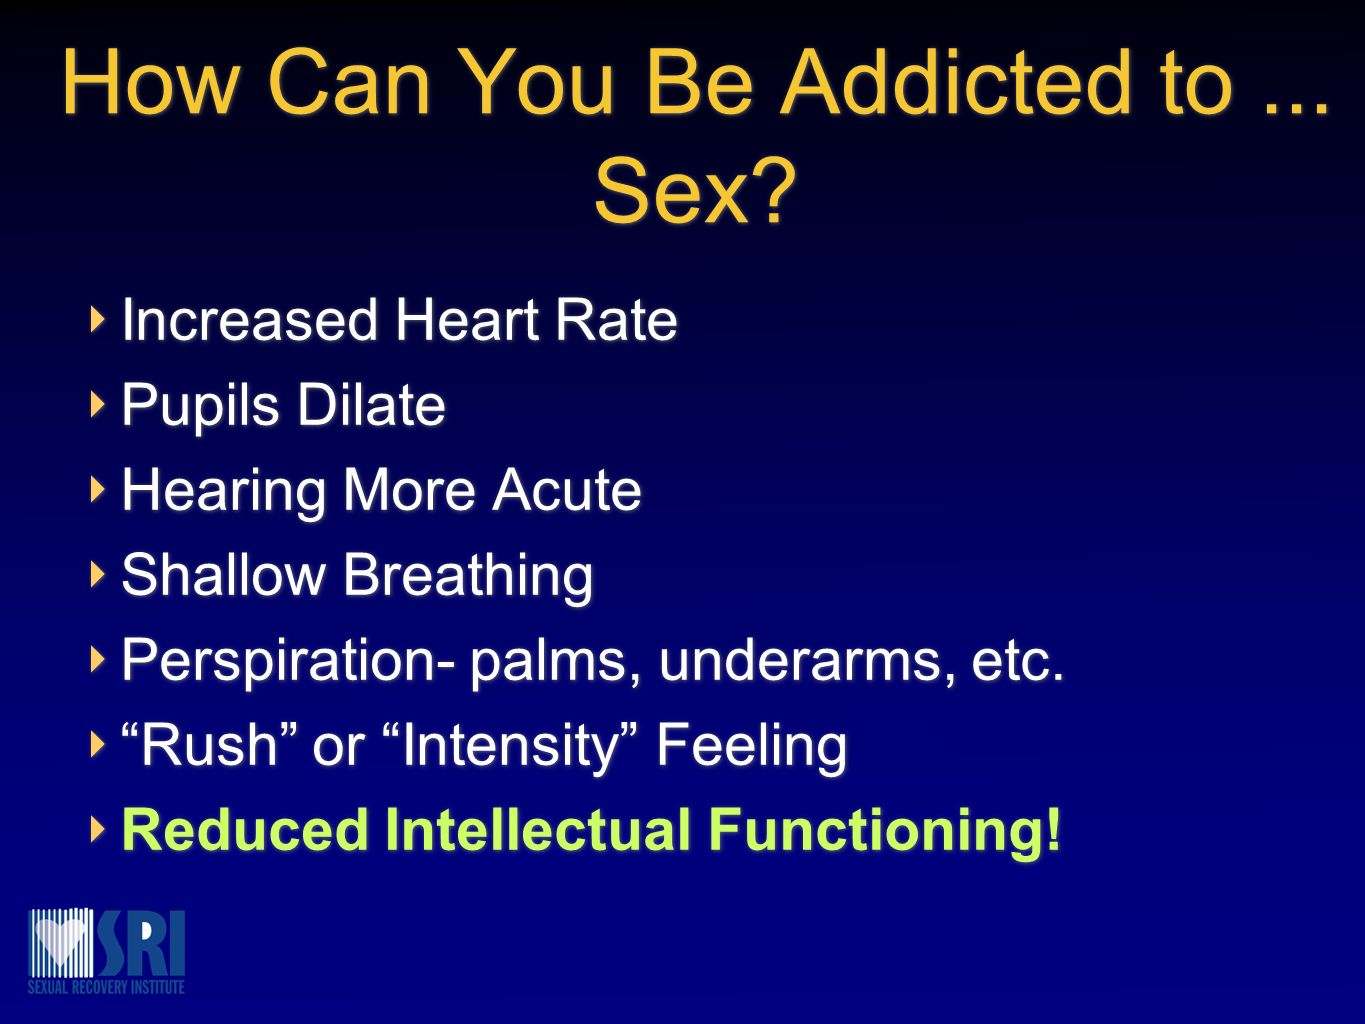 How Can You Be Addicted to ... Sex